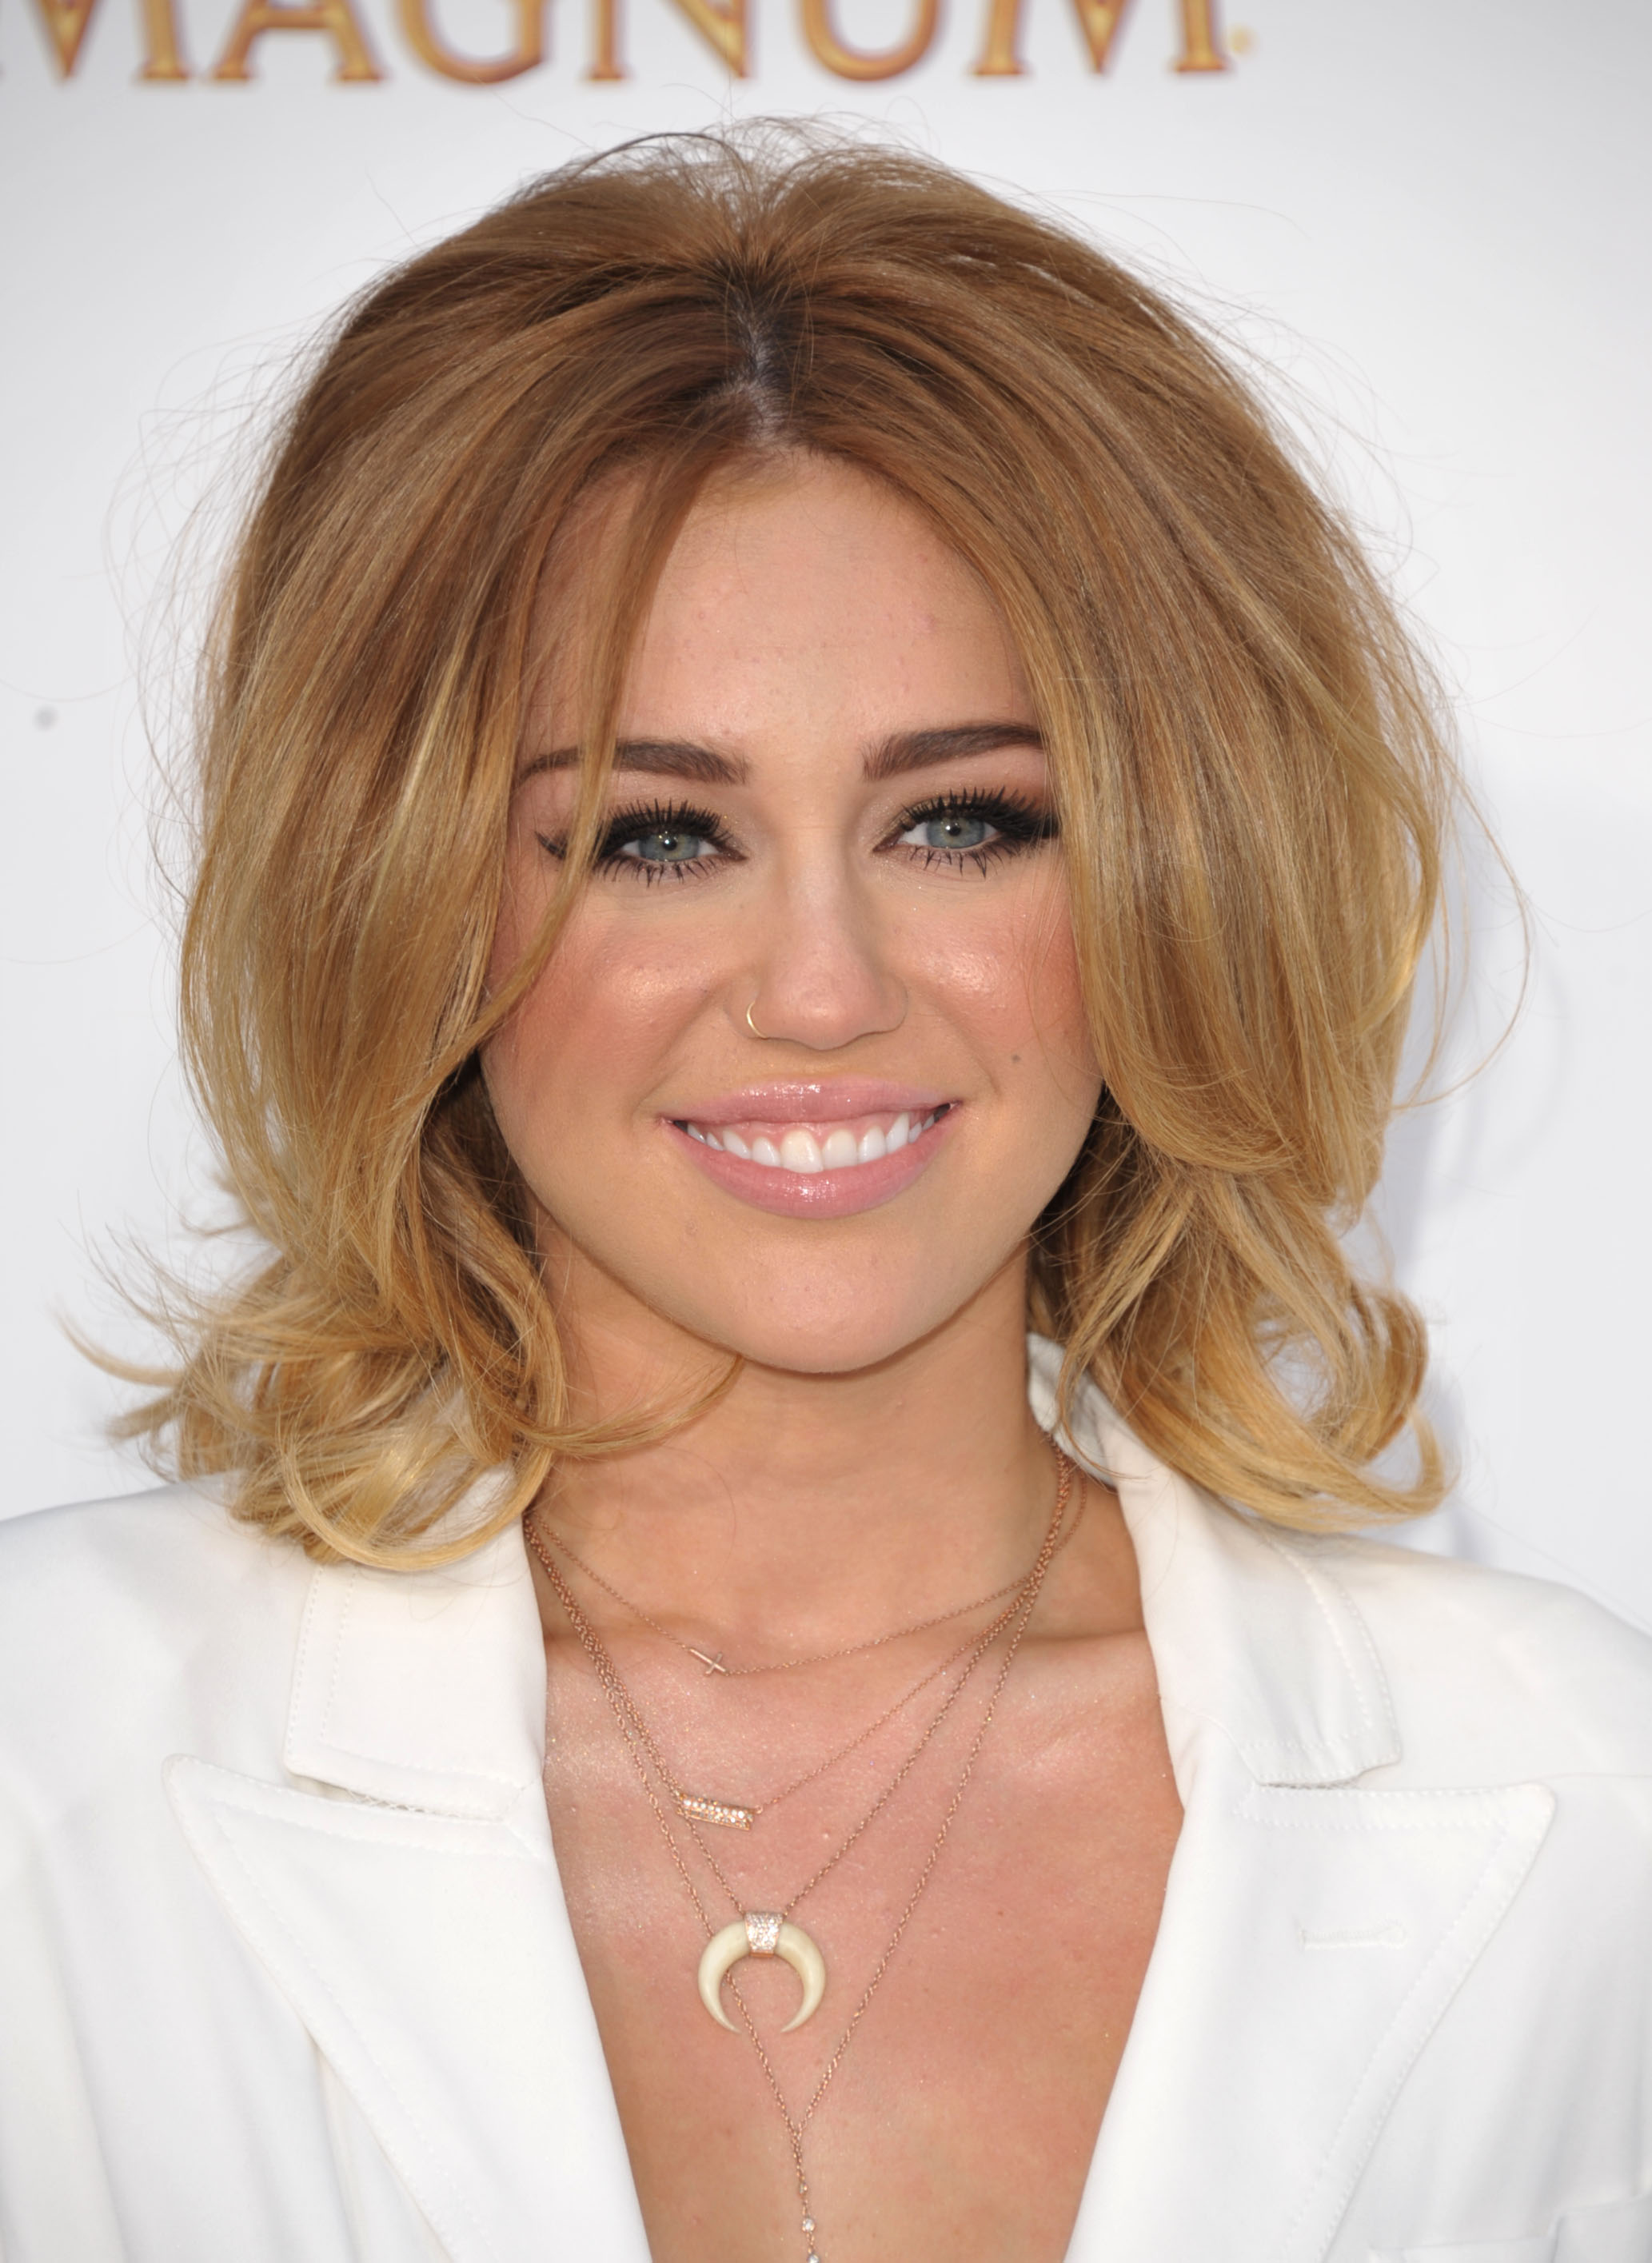 9 Great Ways To React To Miley Cyruss New Haircut The Daily Edge